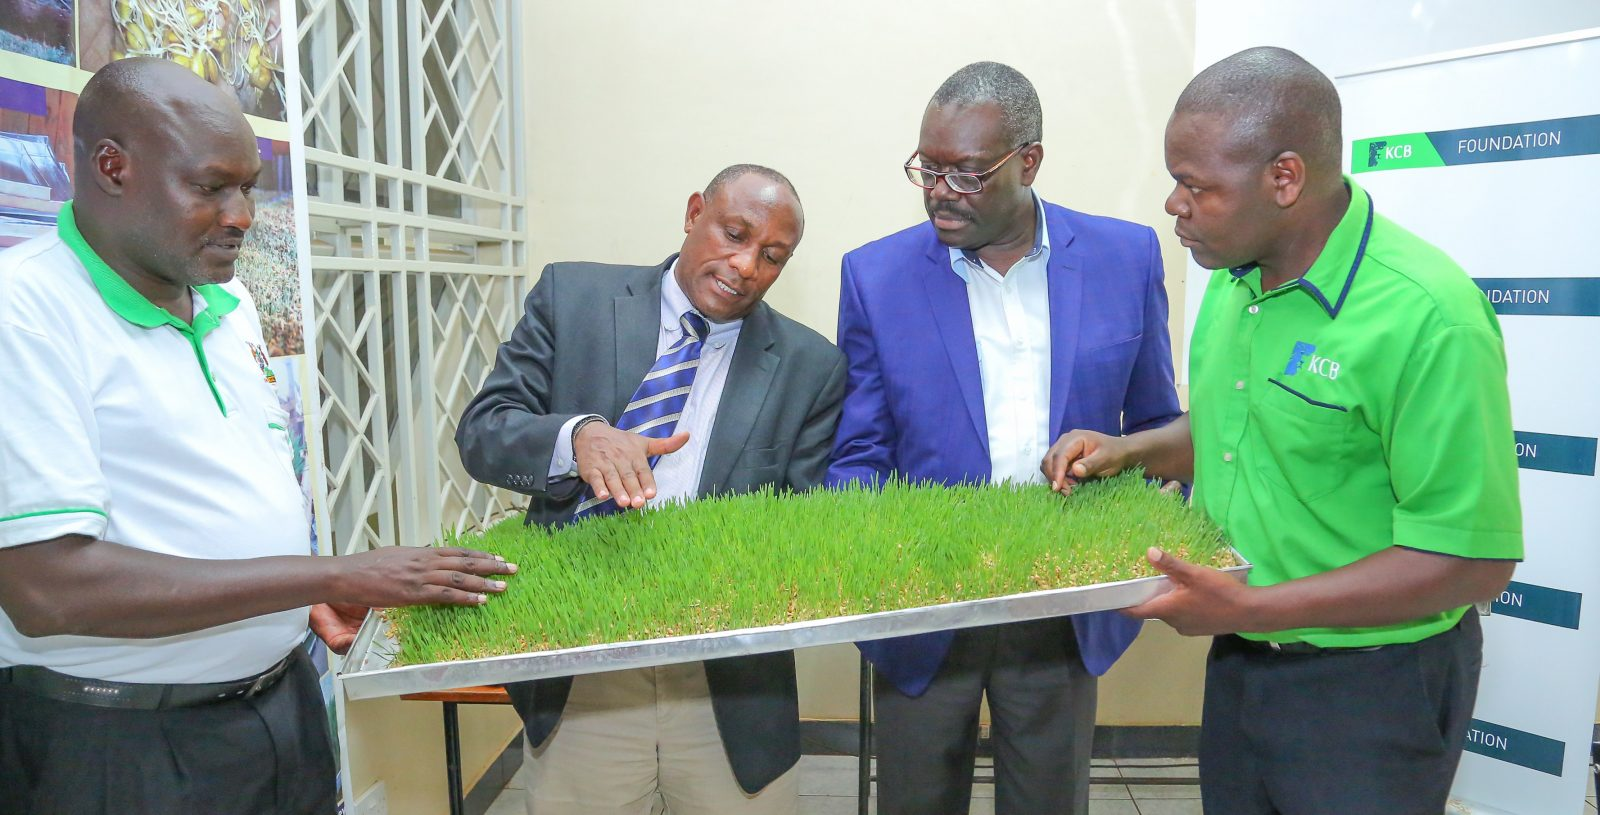 Baringo County Farmers to Benefit from New Livestock Farming Technology